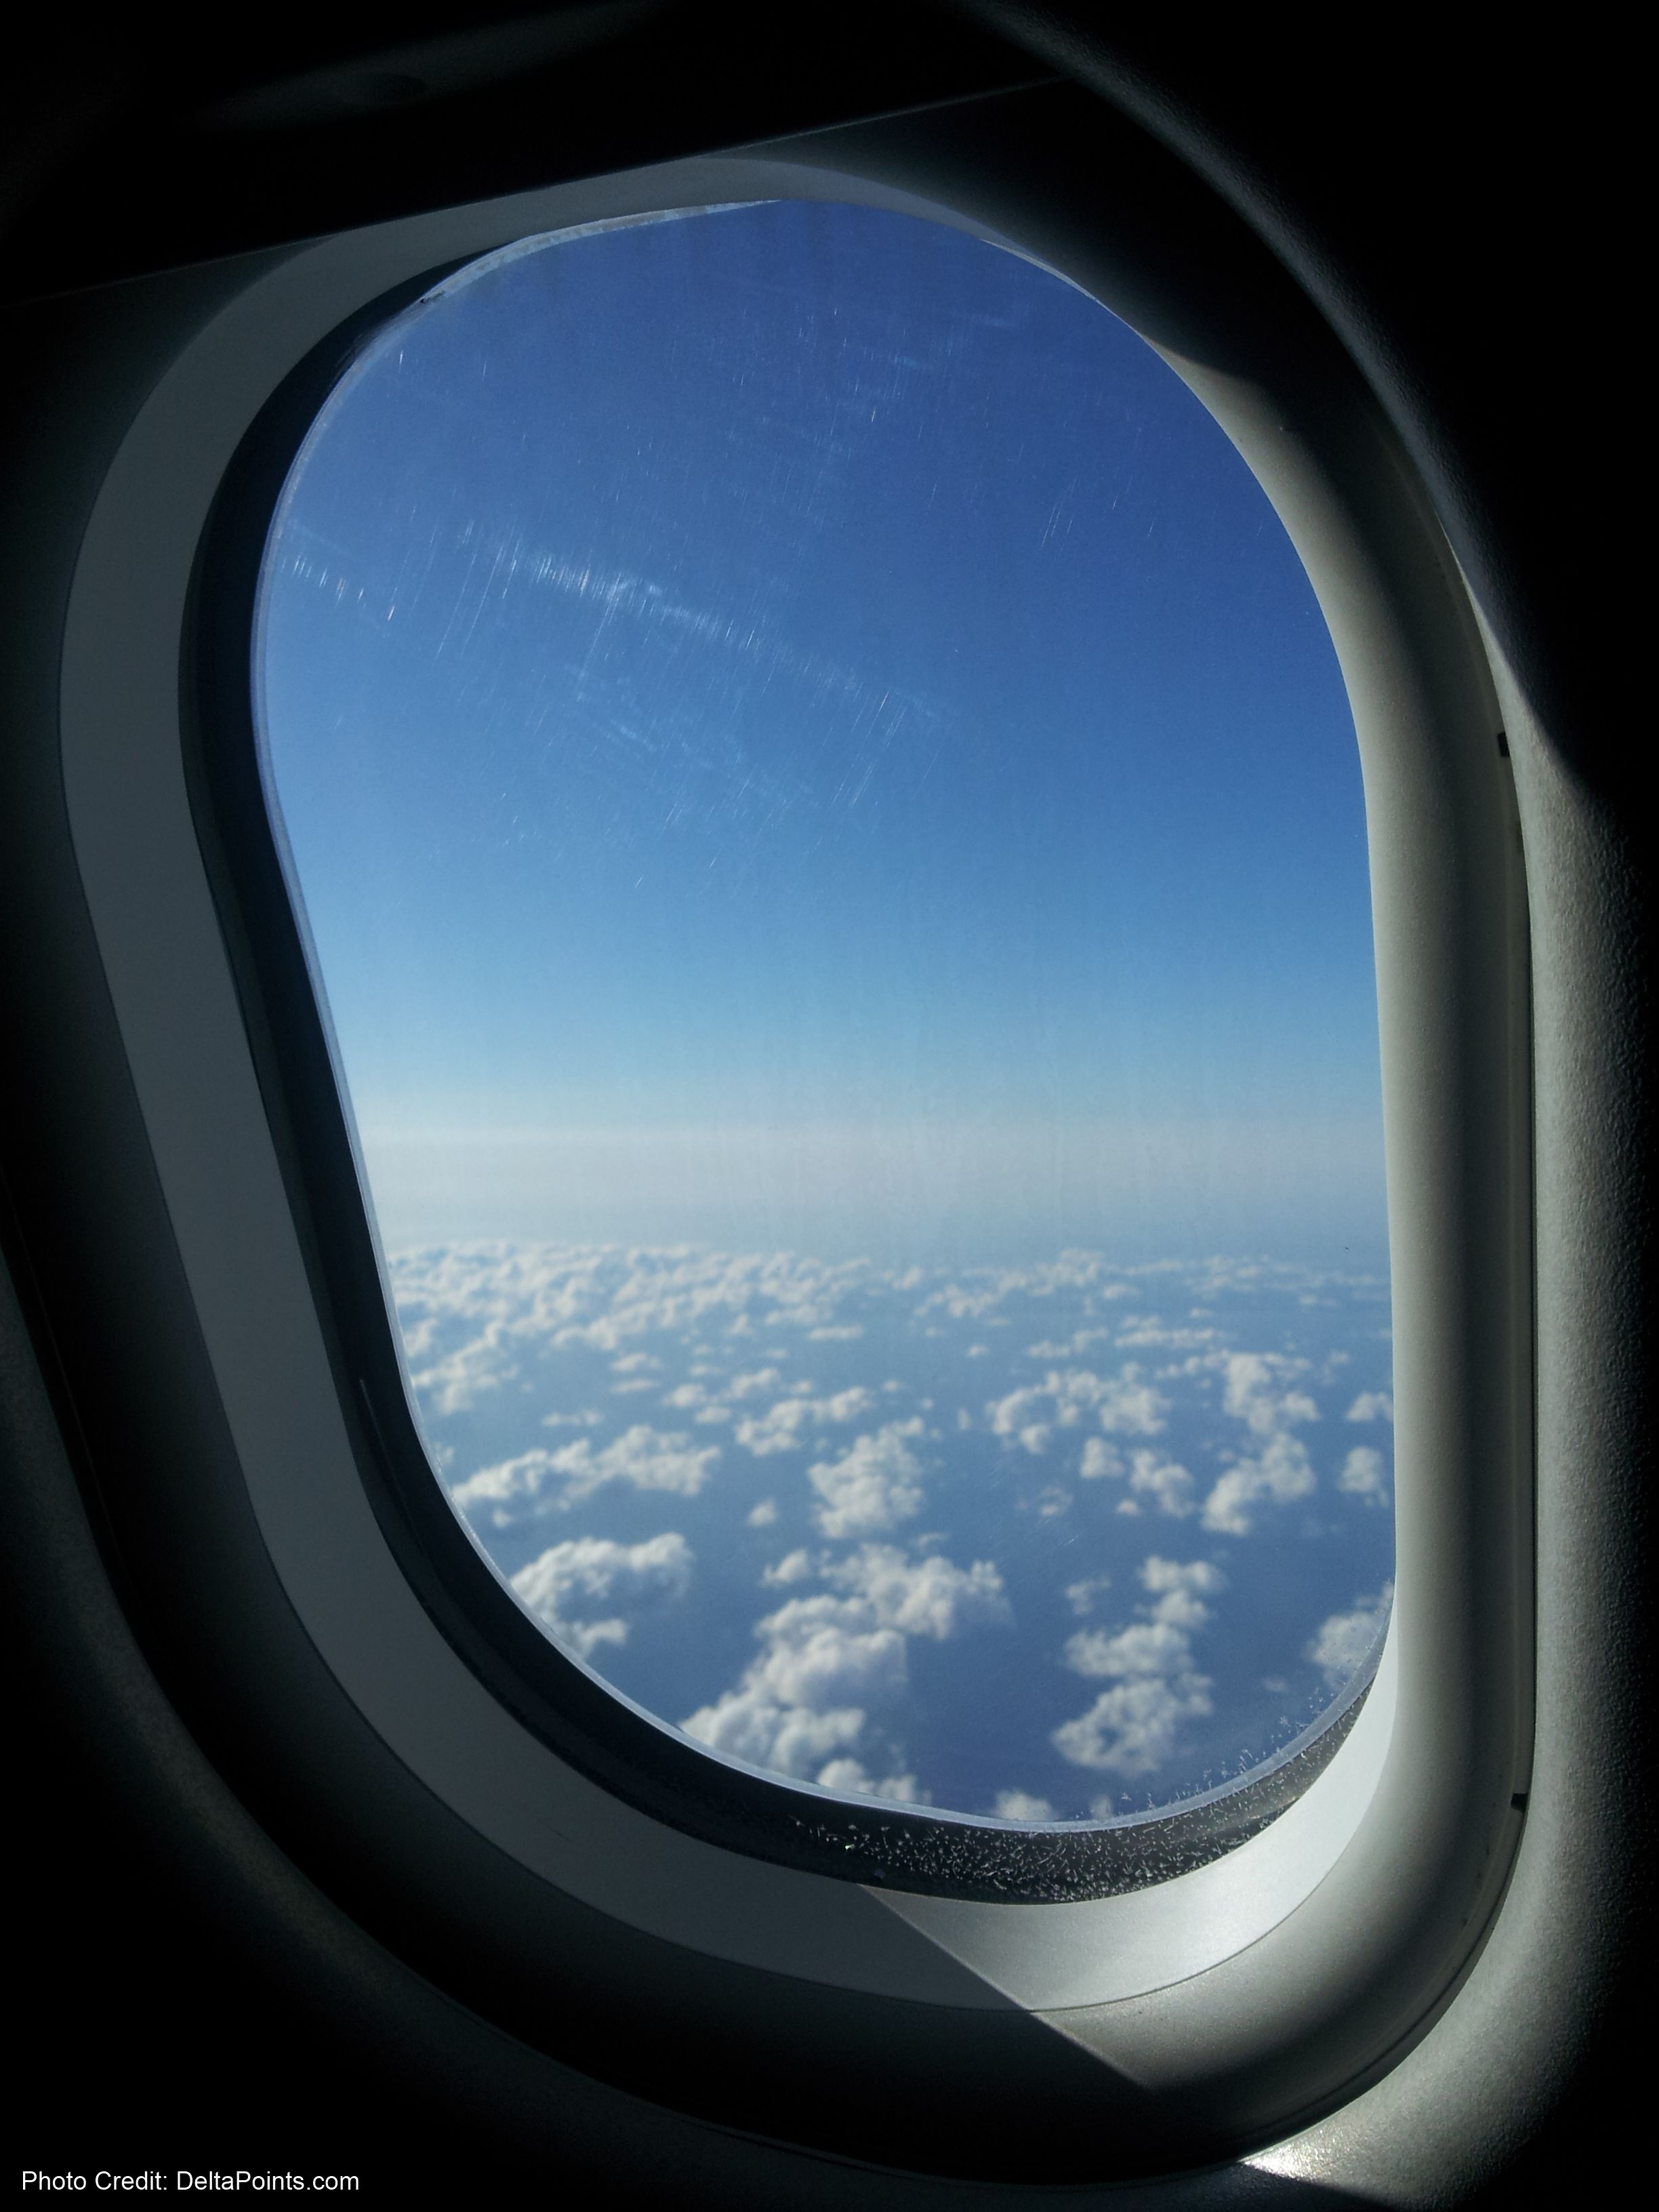 Pin by DeltaPoints on Delta Airplane view, Aviation